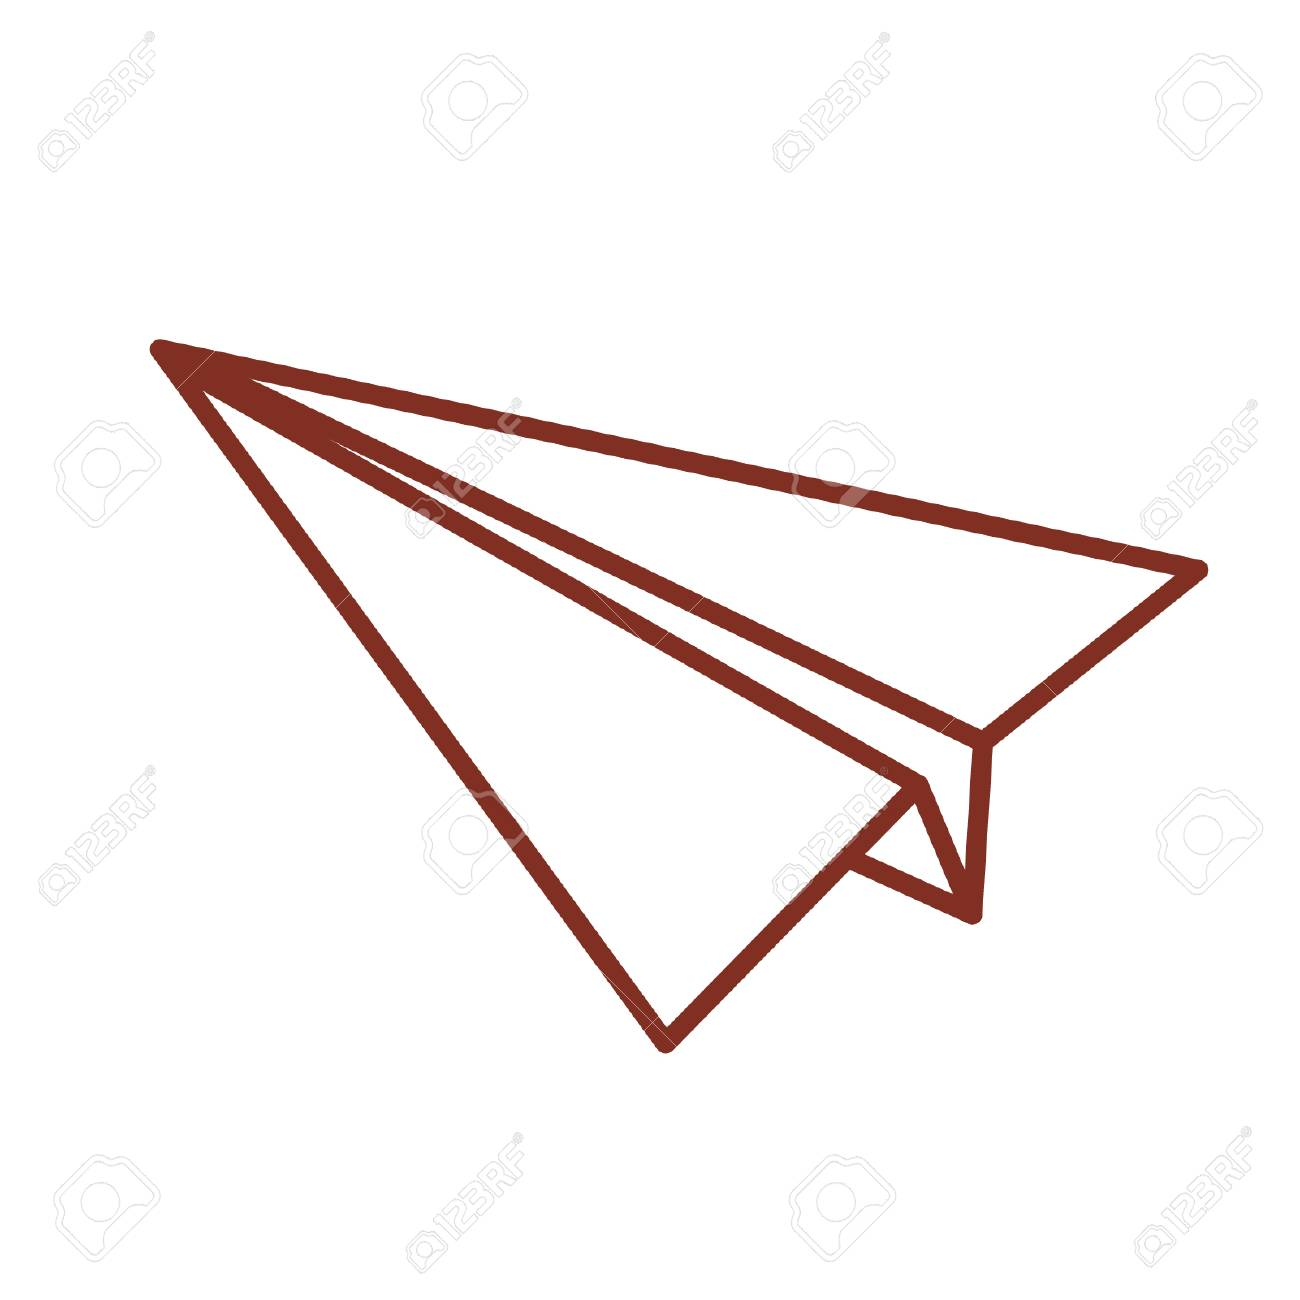 Cartoon Paper Plane Royalty Free Cliparts Vectors And Stock